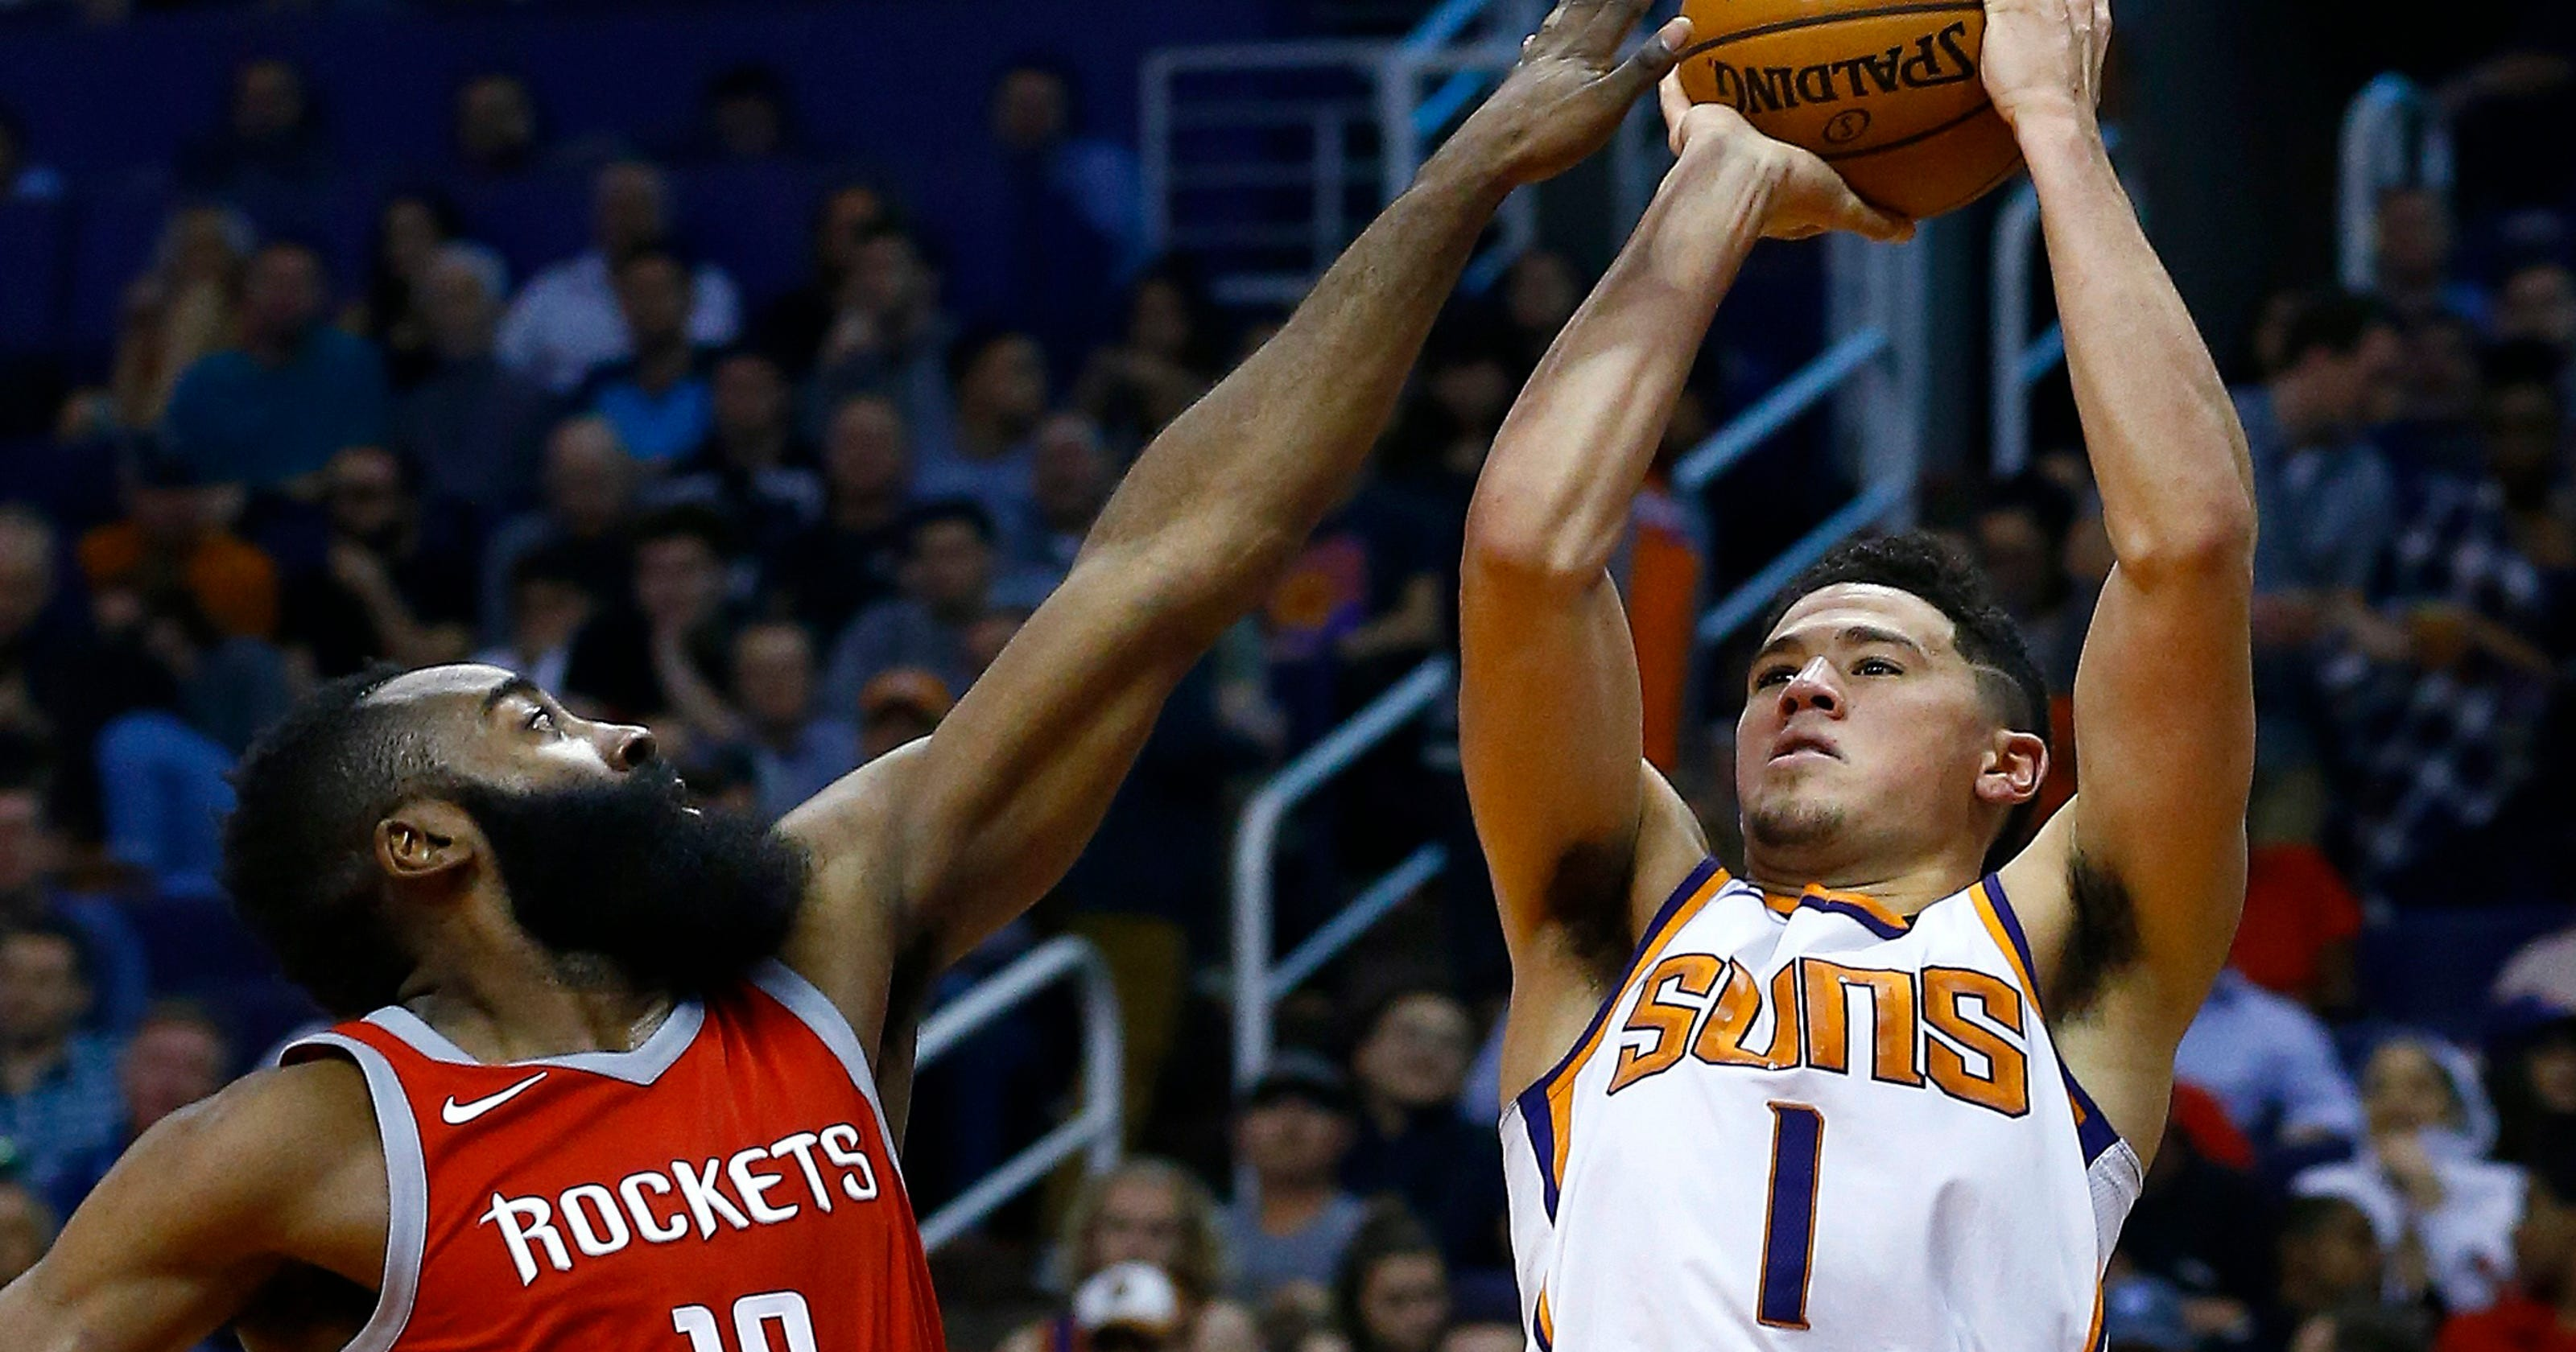 065457cabe21 Practice battles with P.J. Tucker helped Suns guard Devin Booker grow